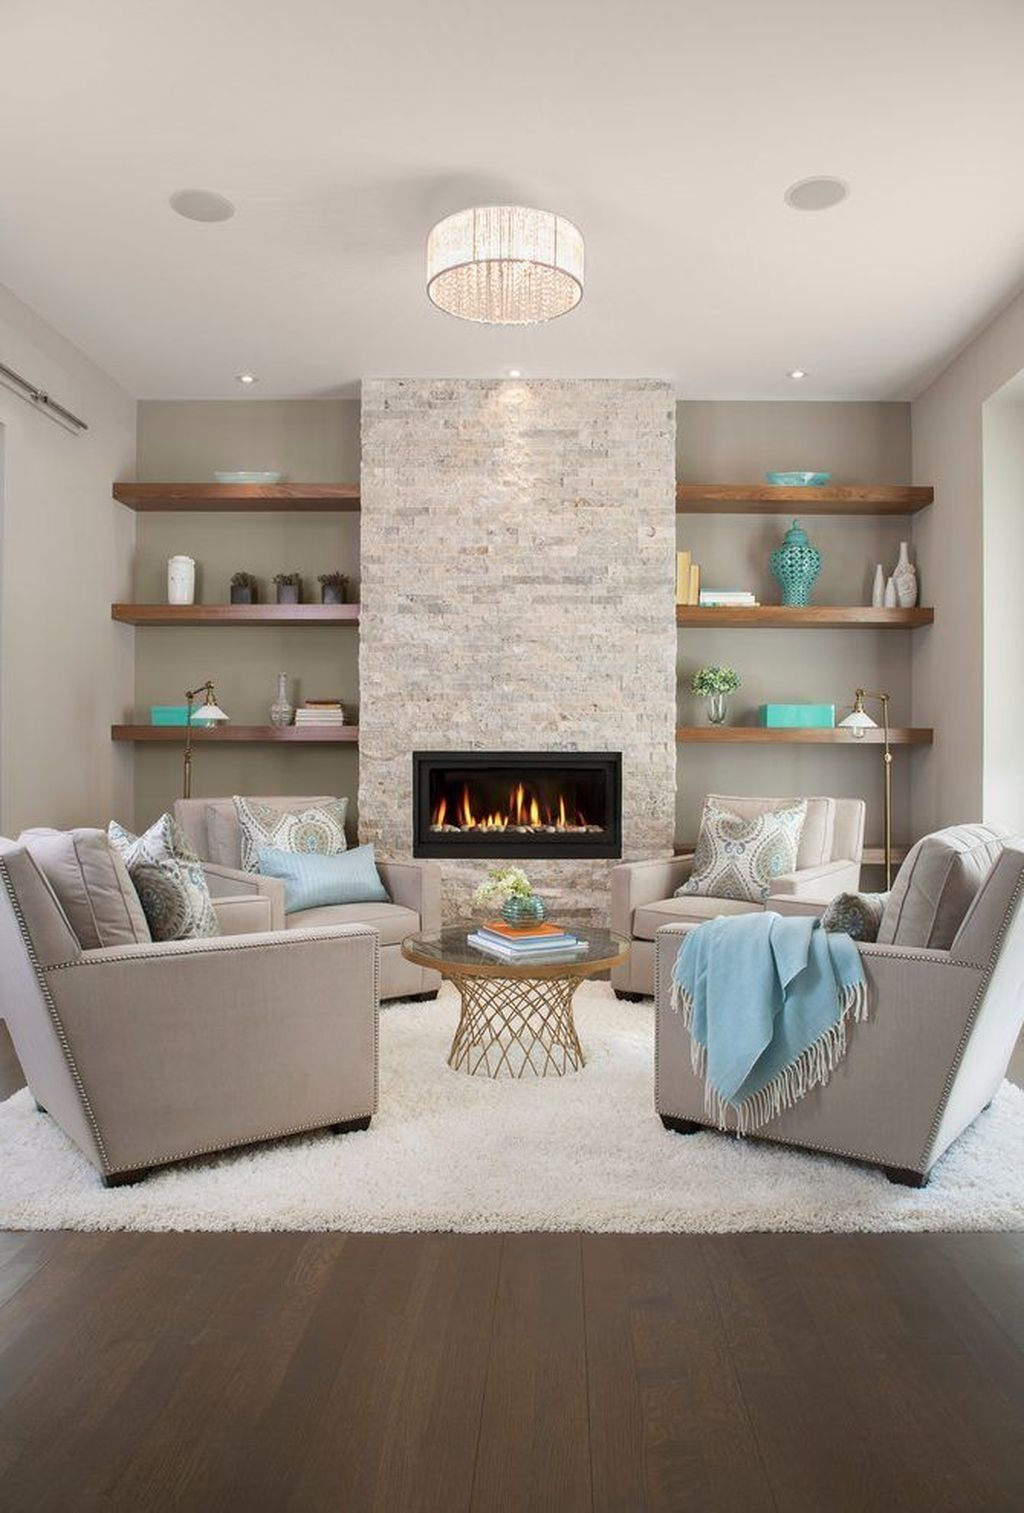 20+ Comfy Winter Living Room Ideas With Fireplace - TRENDECORS